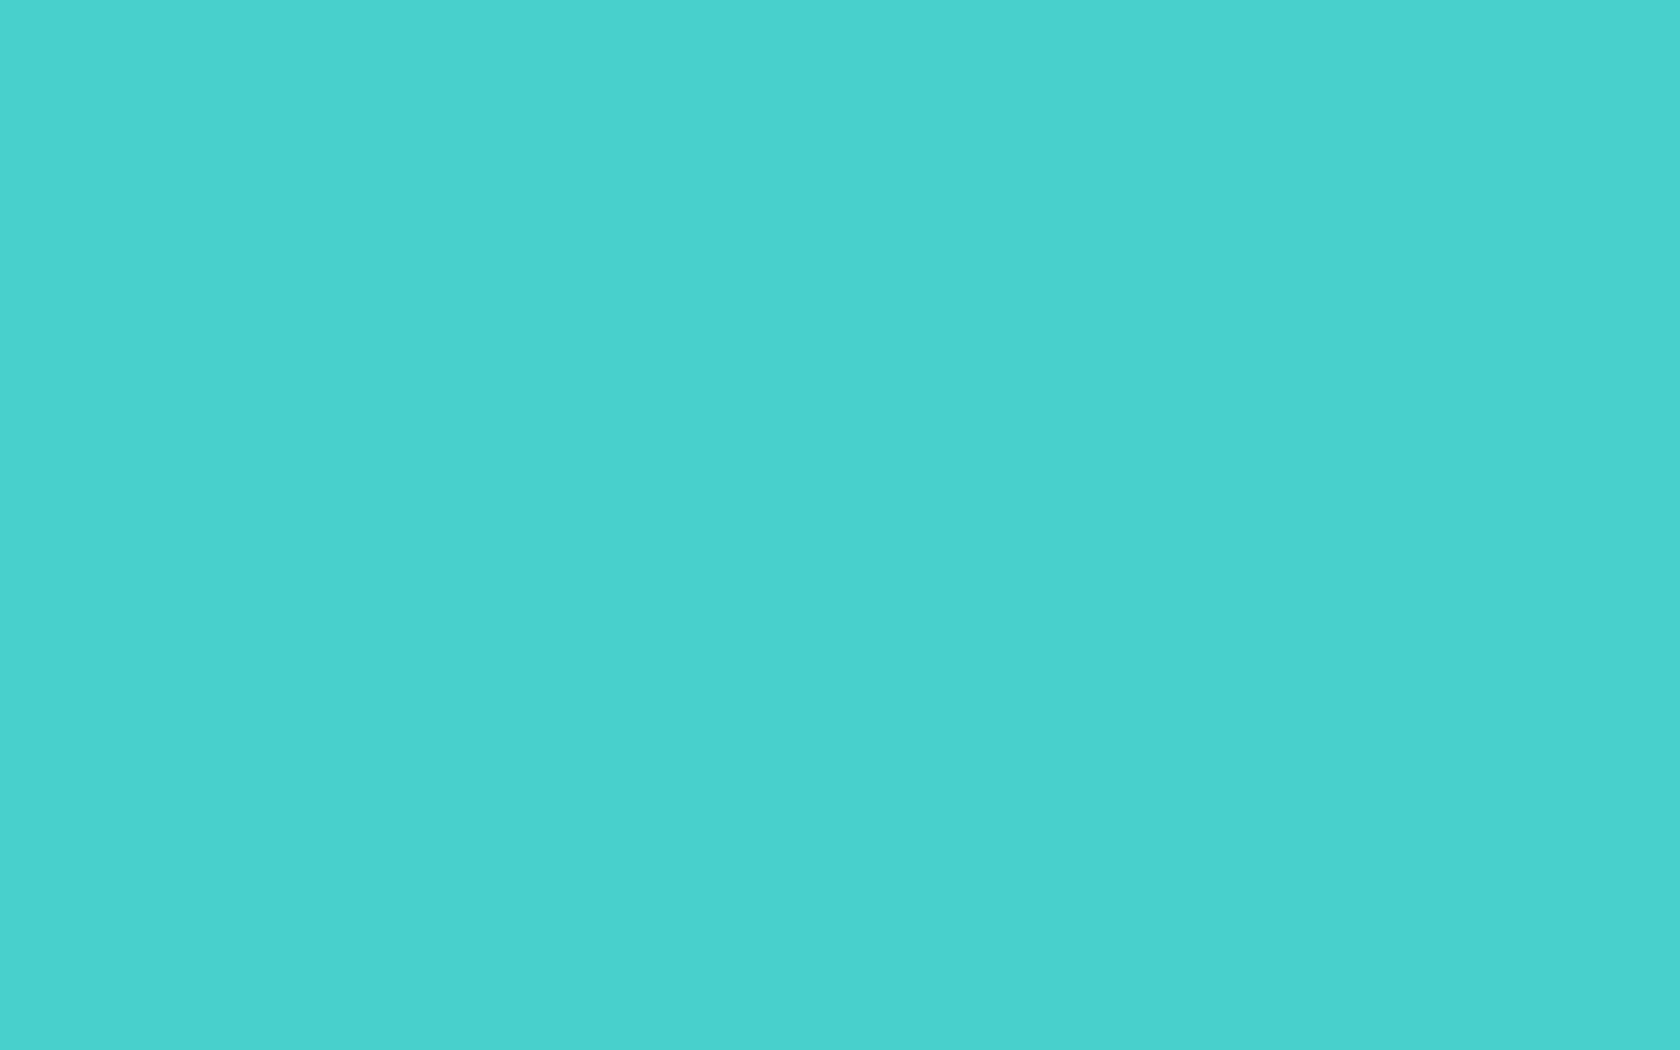 1680x1050 Medium Turquoise Solid Color Background